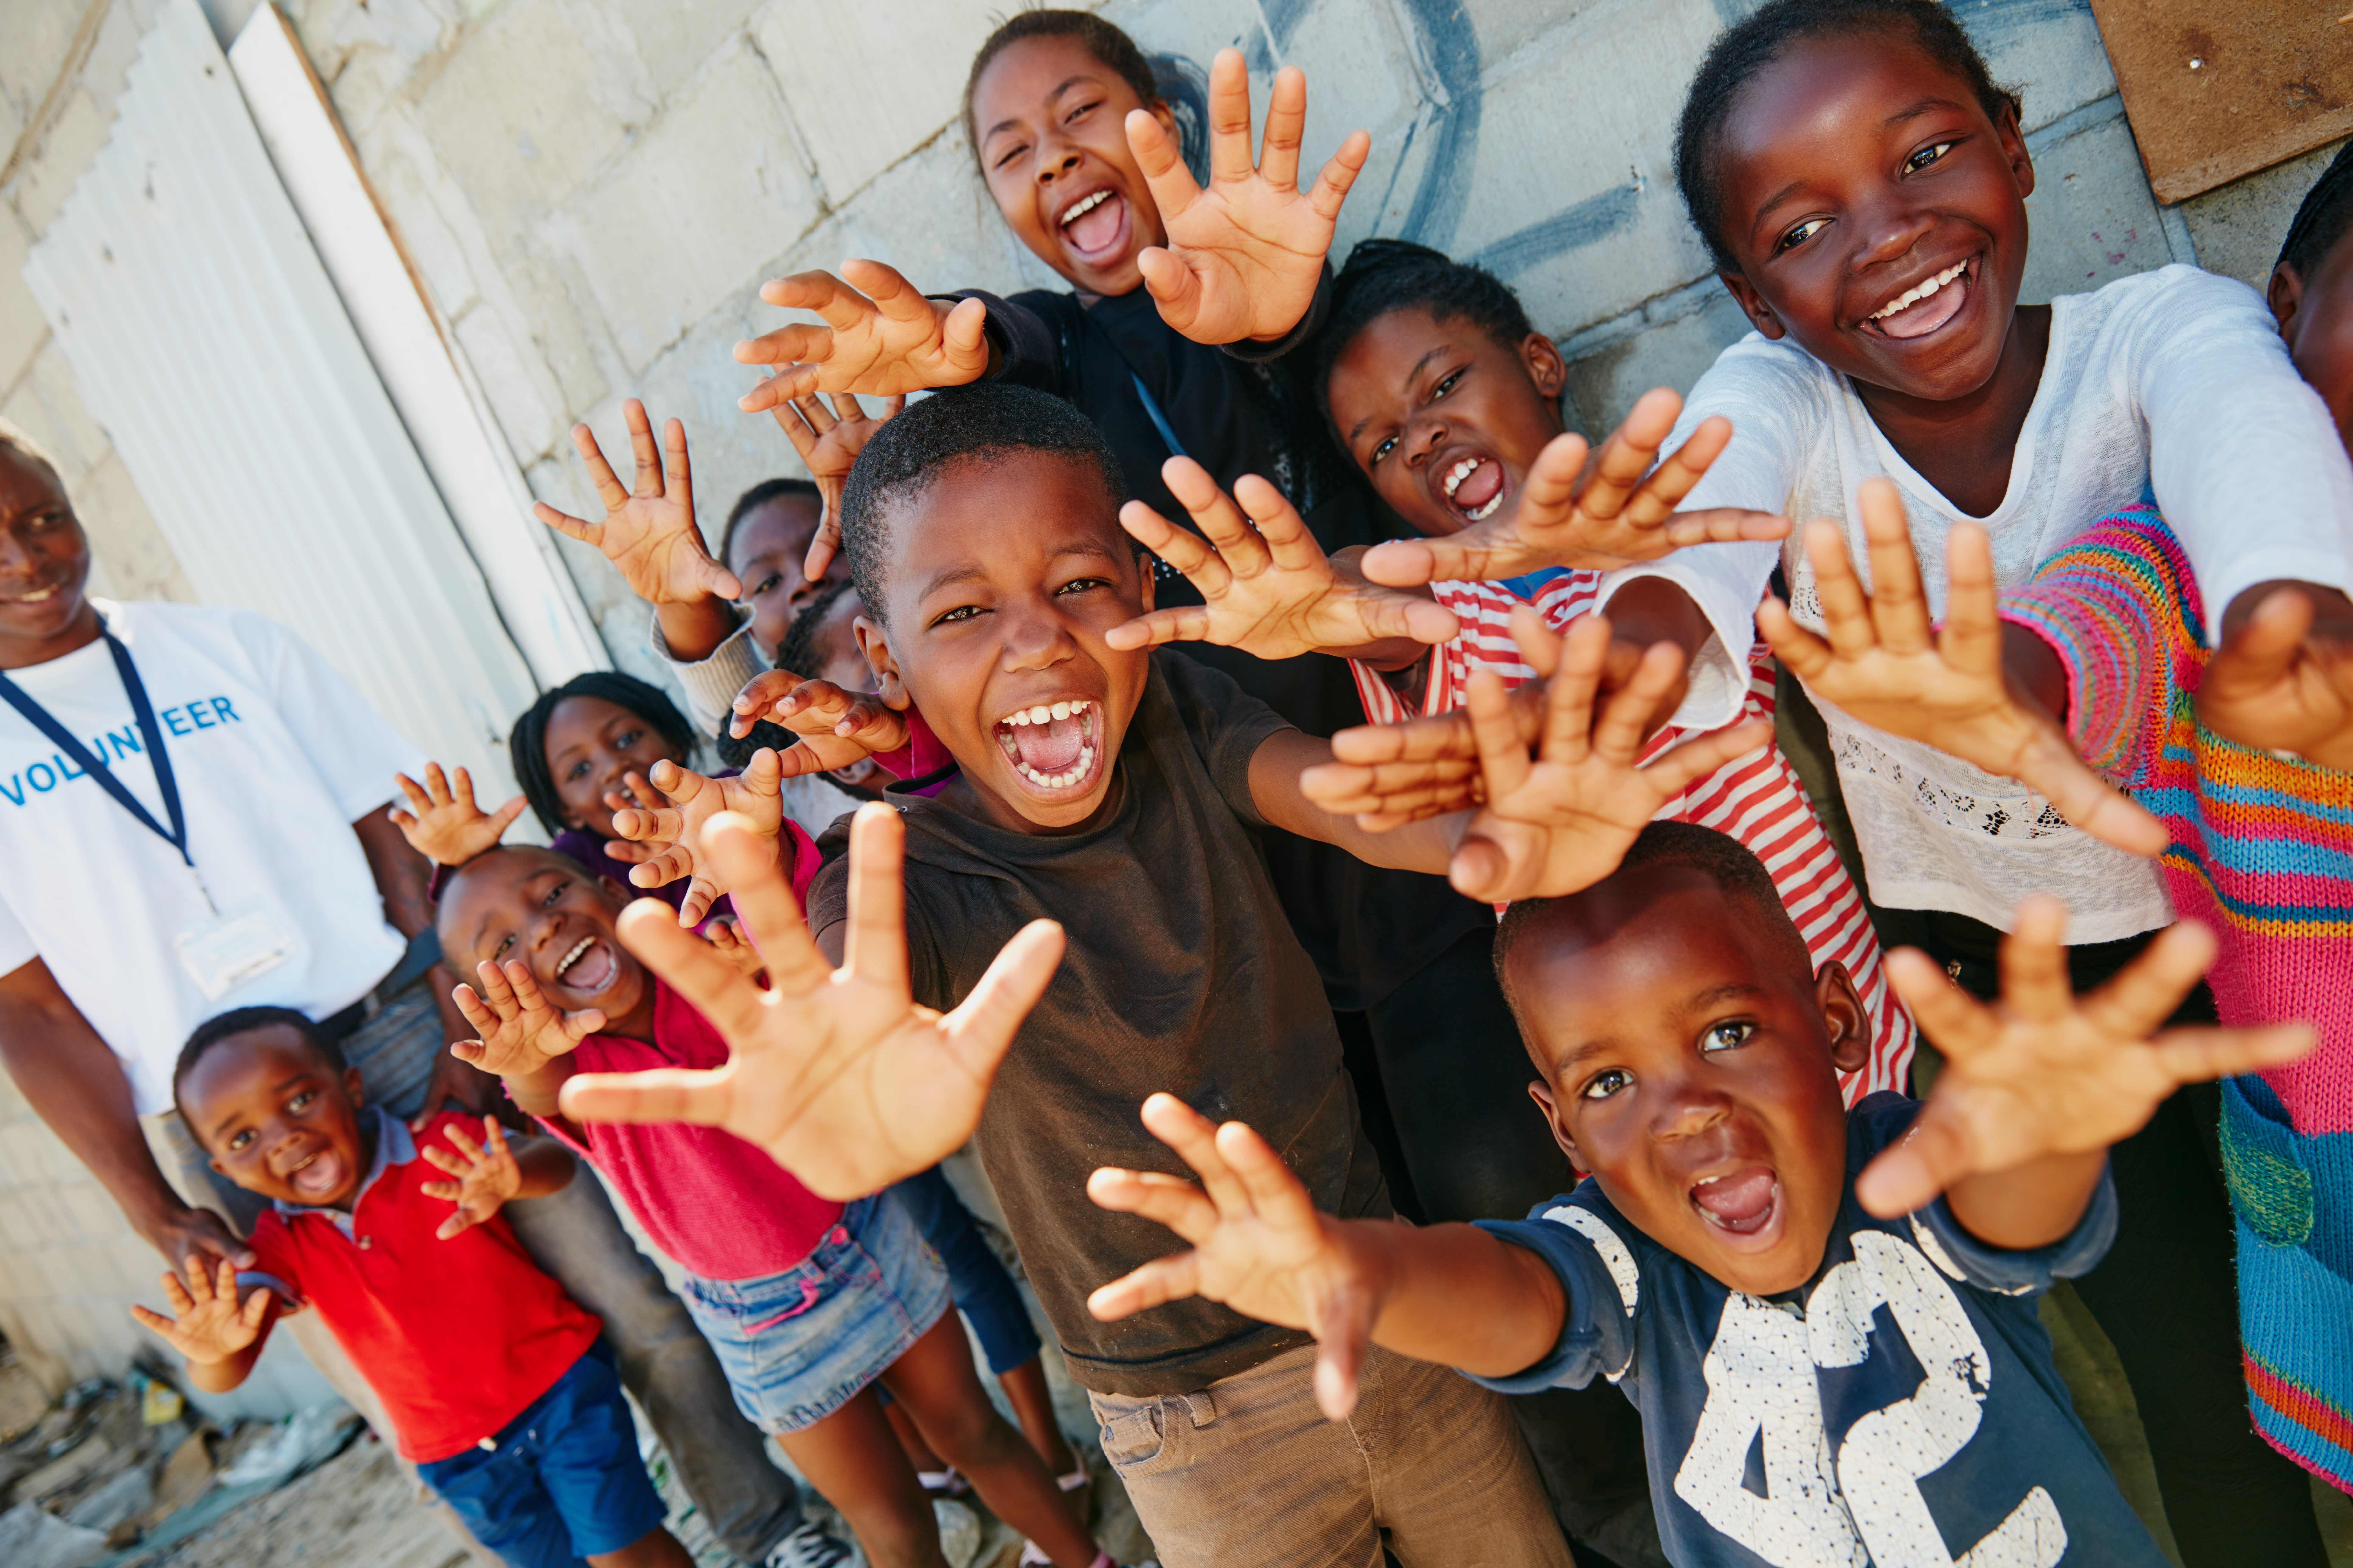 group of children holding out hands and smiling